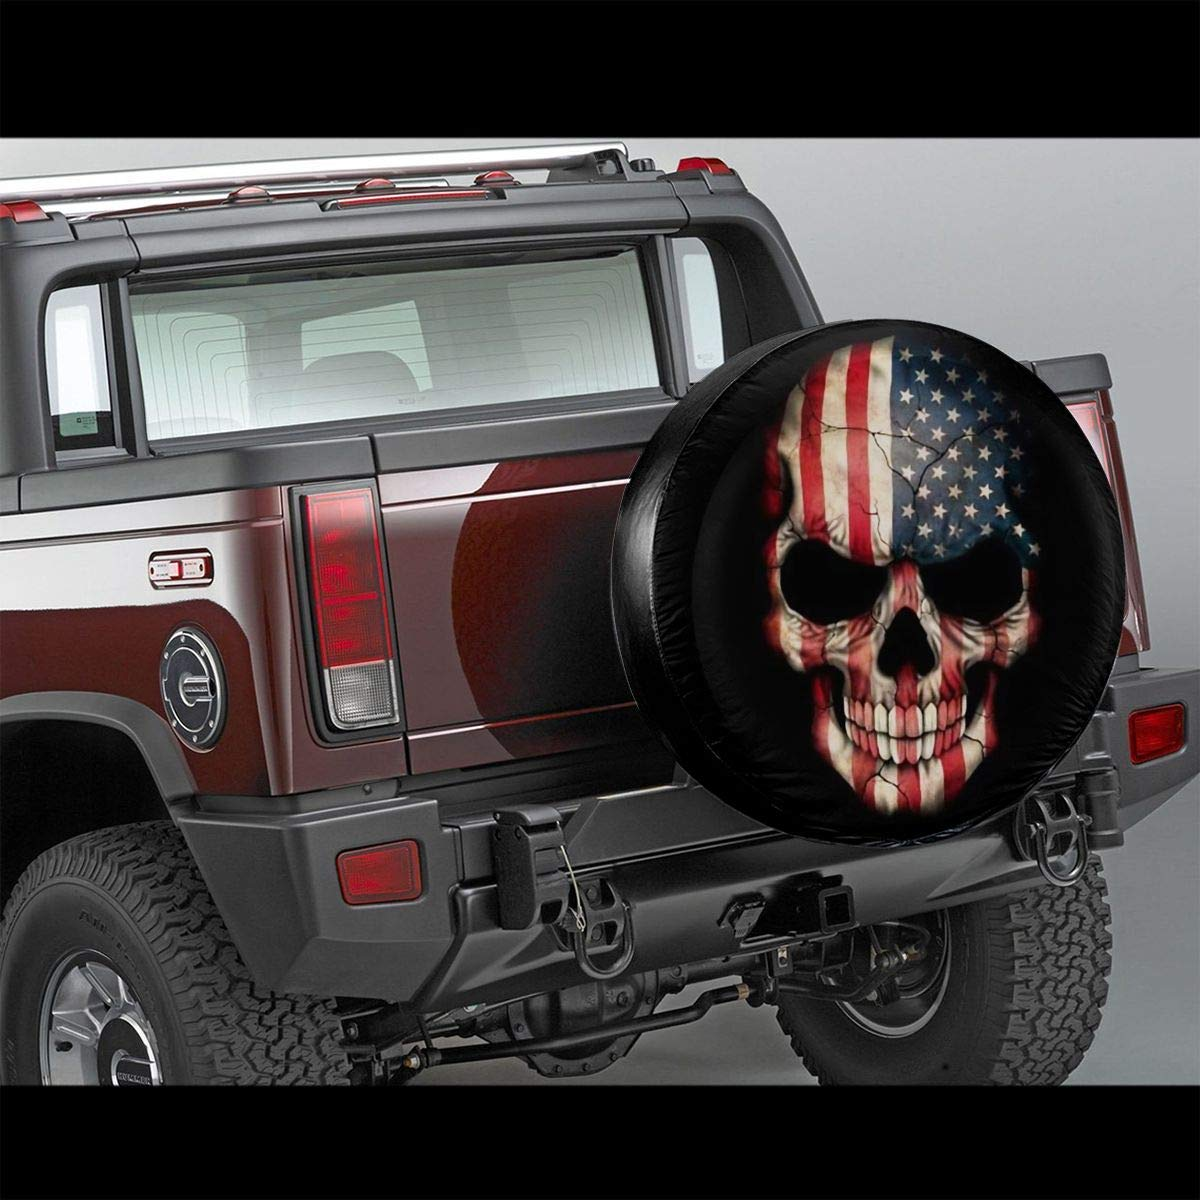 American Honourable Flag Skull Polyester Universal Spare Wheel Tire Cover Wheel Covers for Jeep Trailer RV SUV Truck Camper Travel Trailer Accessories Vbnbvn Reserveradabdeckung 14,15,16,17 Inch